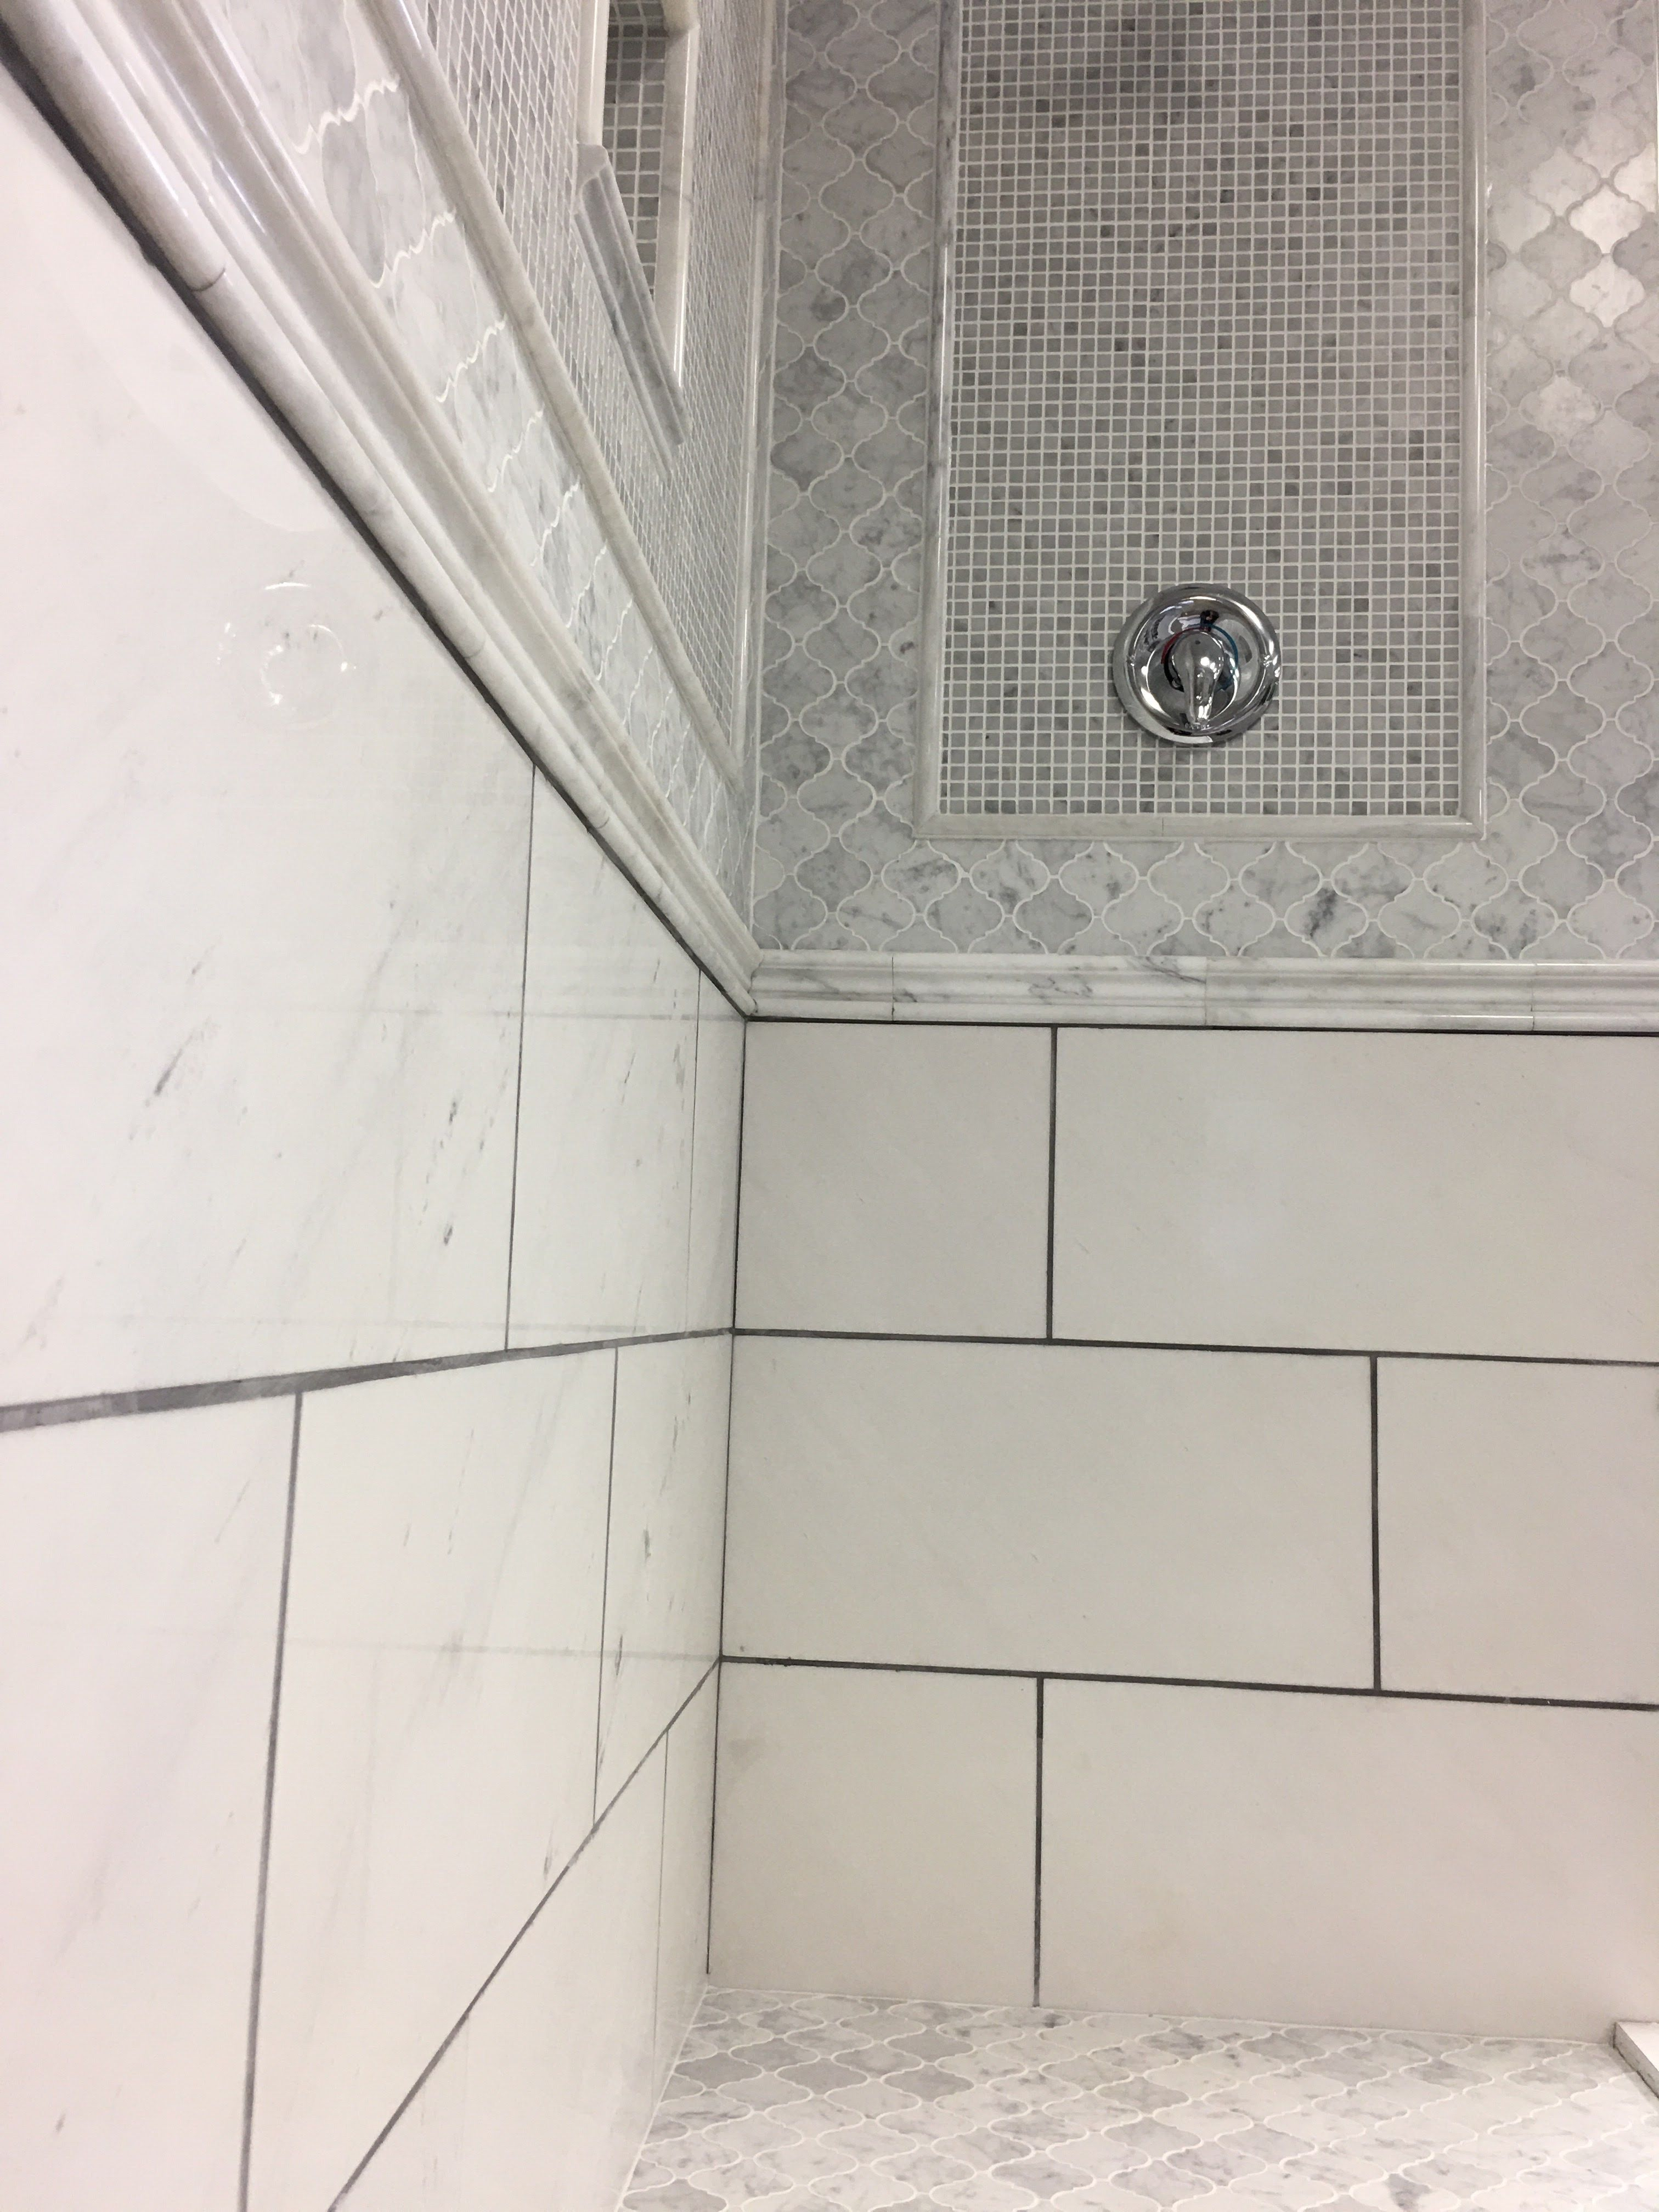 Beautiful Marble Shower Tile Ideas Arabesque Shower Floor 5 8 Square Mosaic Bordered By Bianco Carrara Mar Shower Floor Tile Gray Bathroom Decor Shower Tile